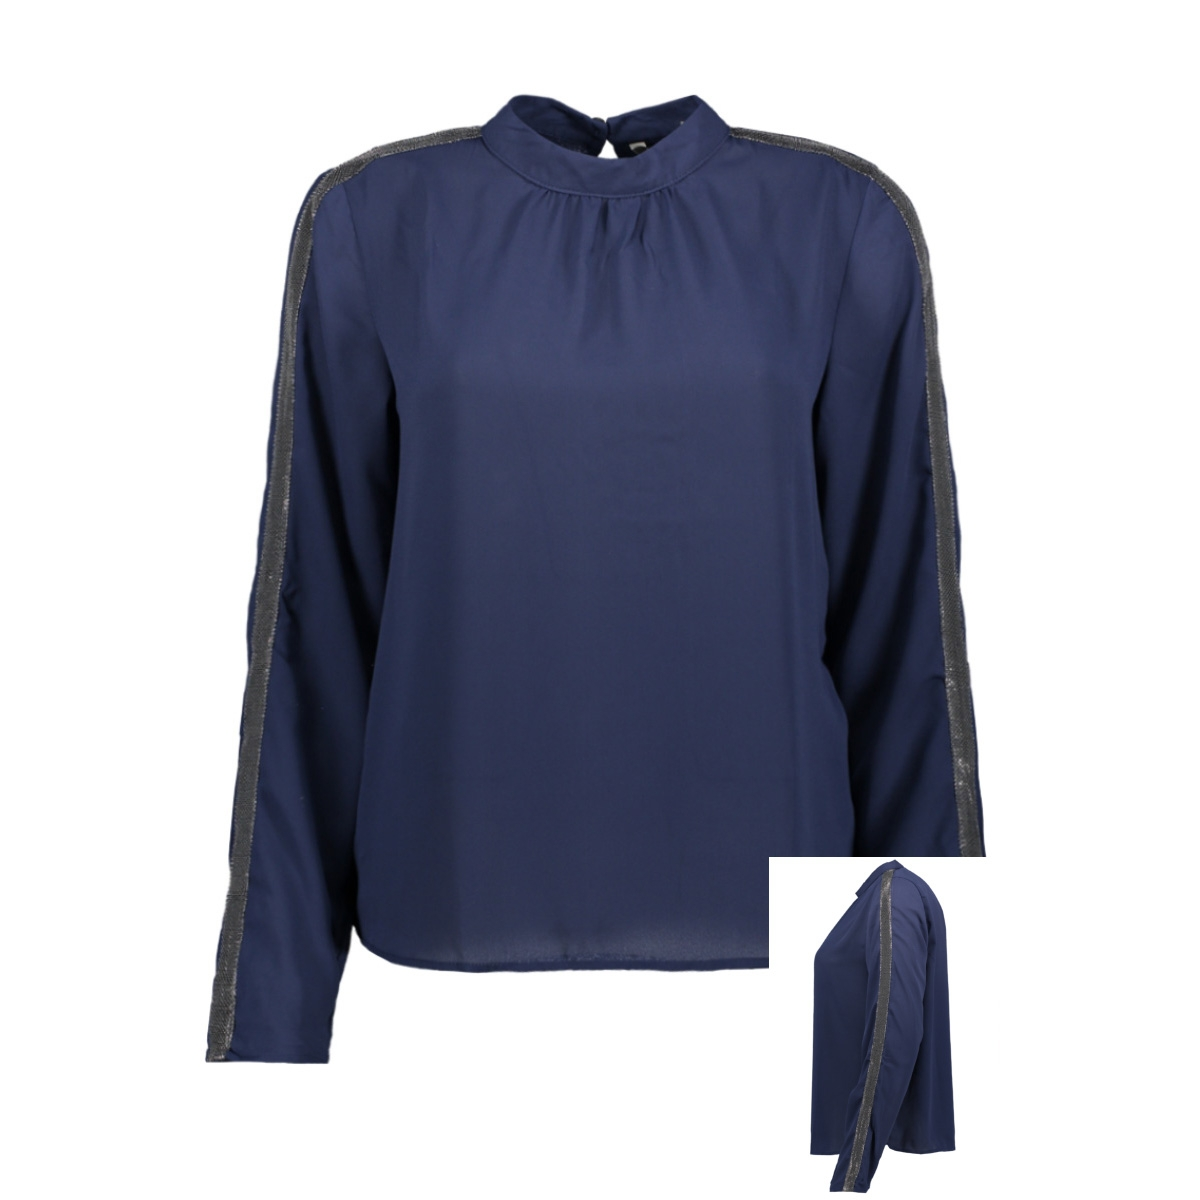 onltimca l/s top wvn 15190246 only blouse peacoat